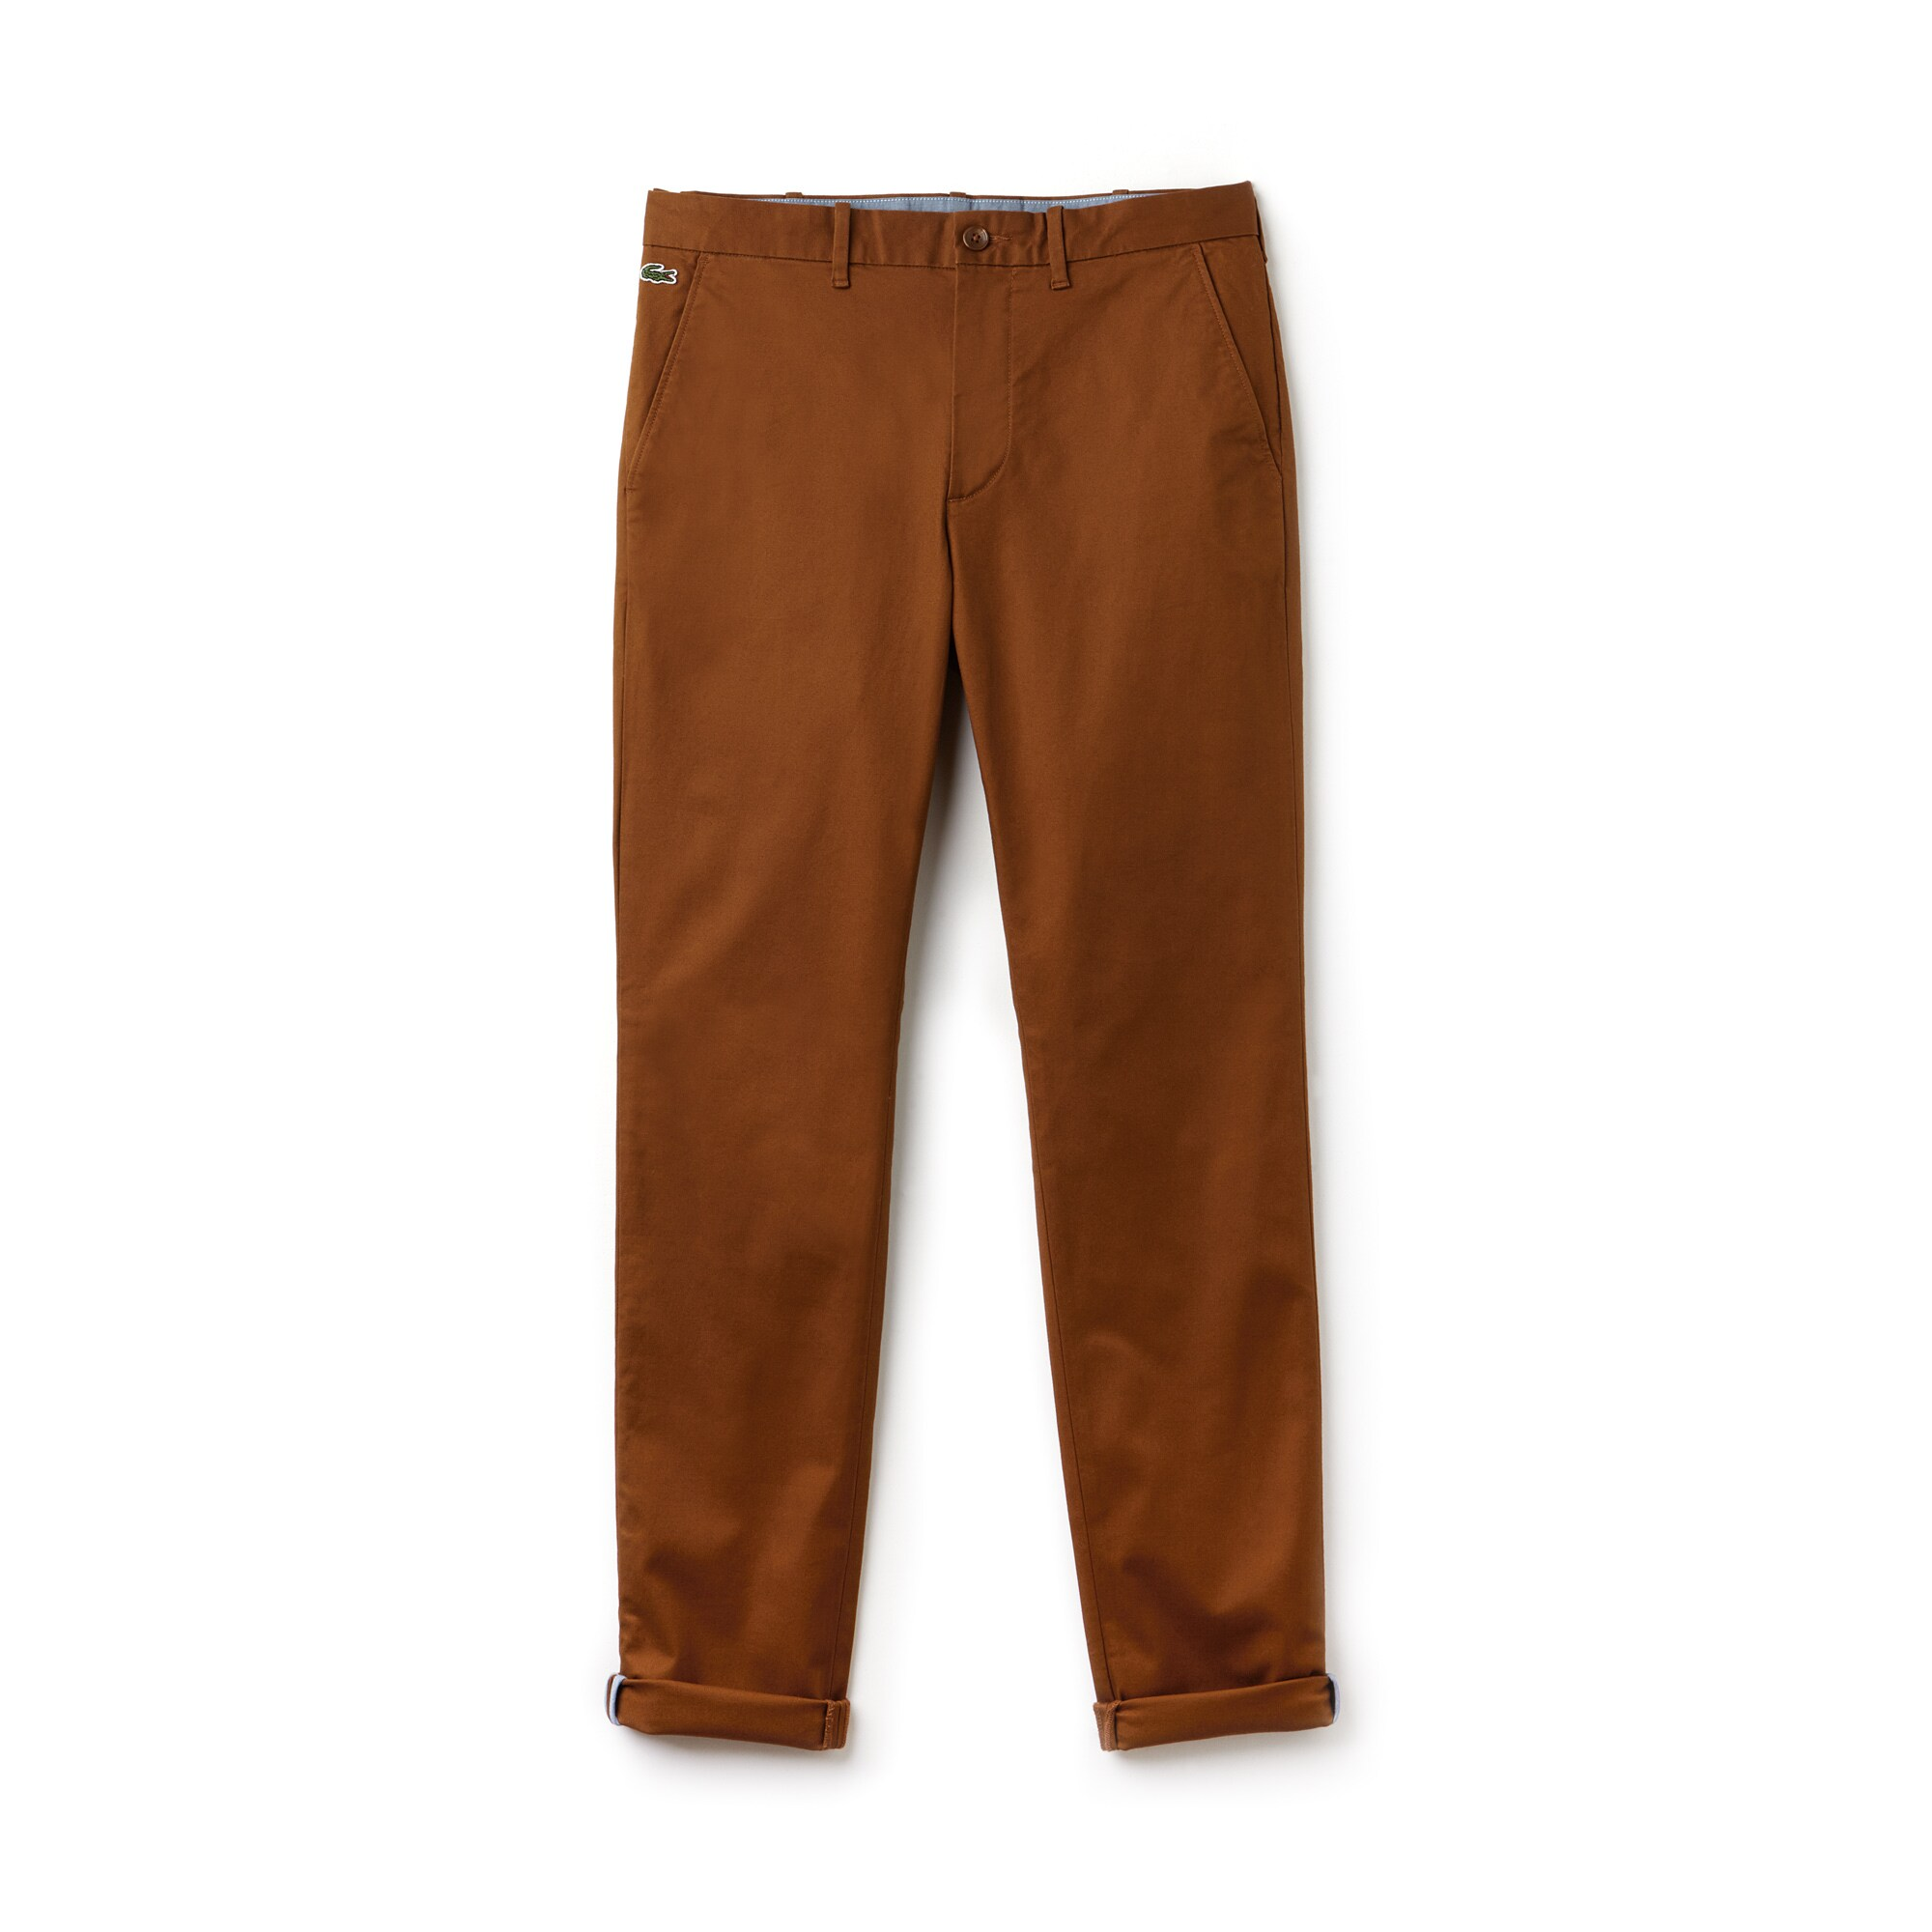 Men's Lacoste LIVE Stretch Twill Chino Pants